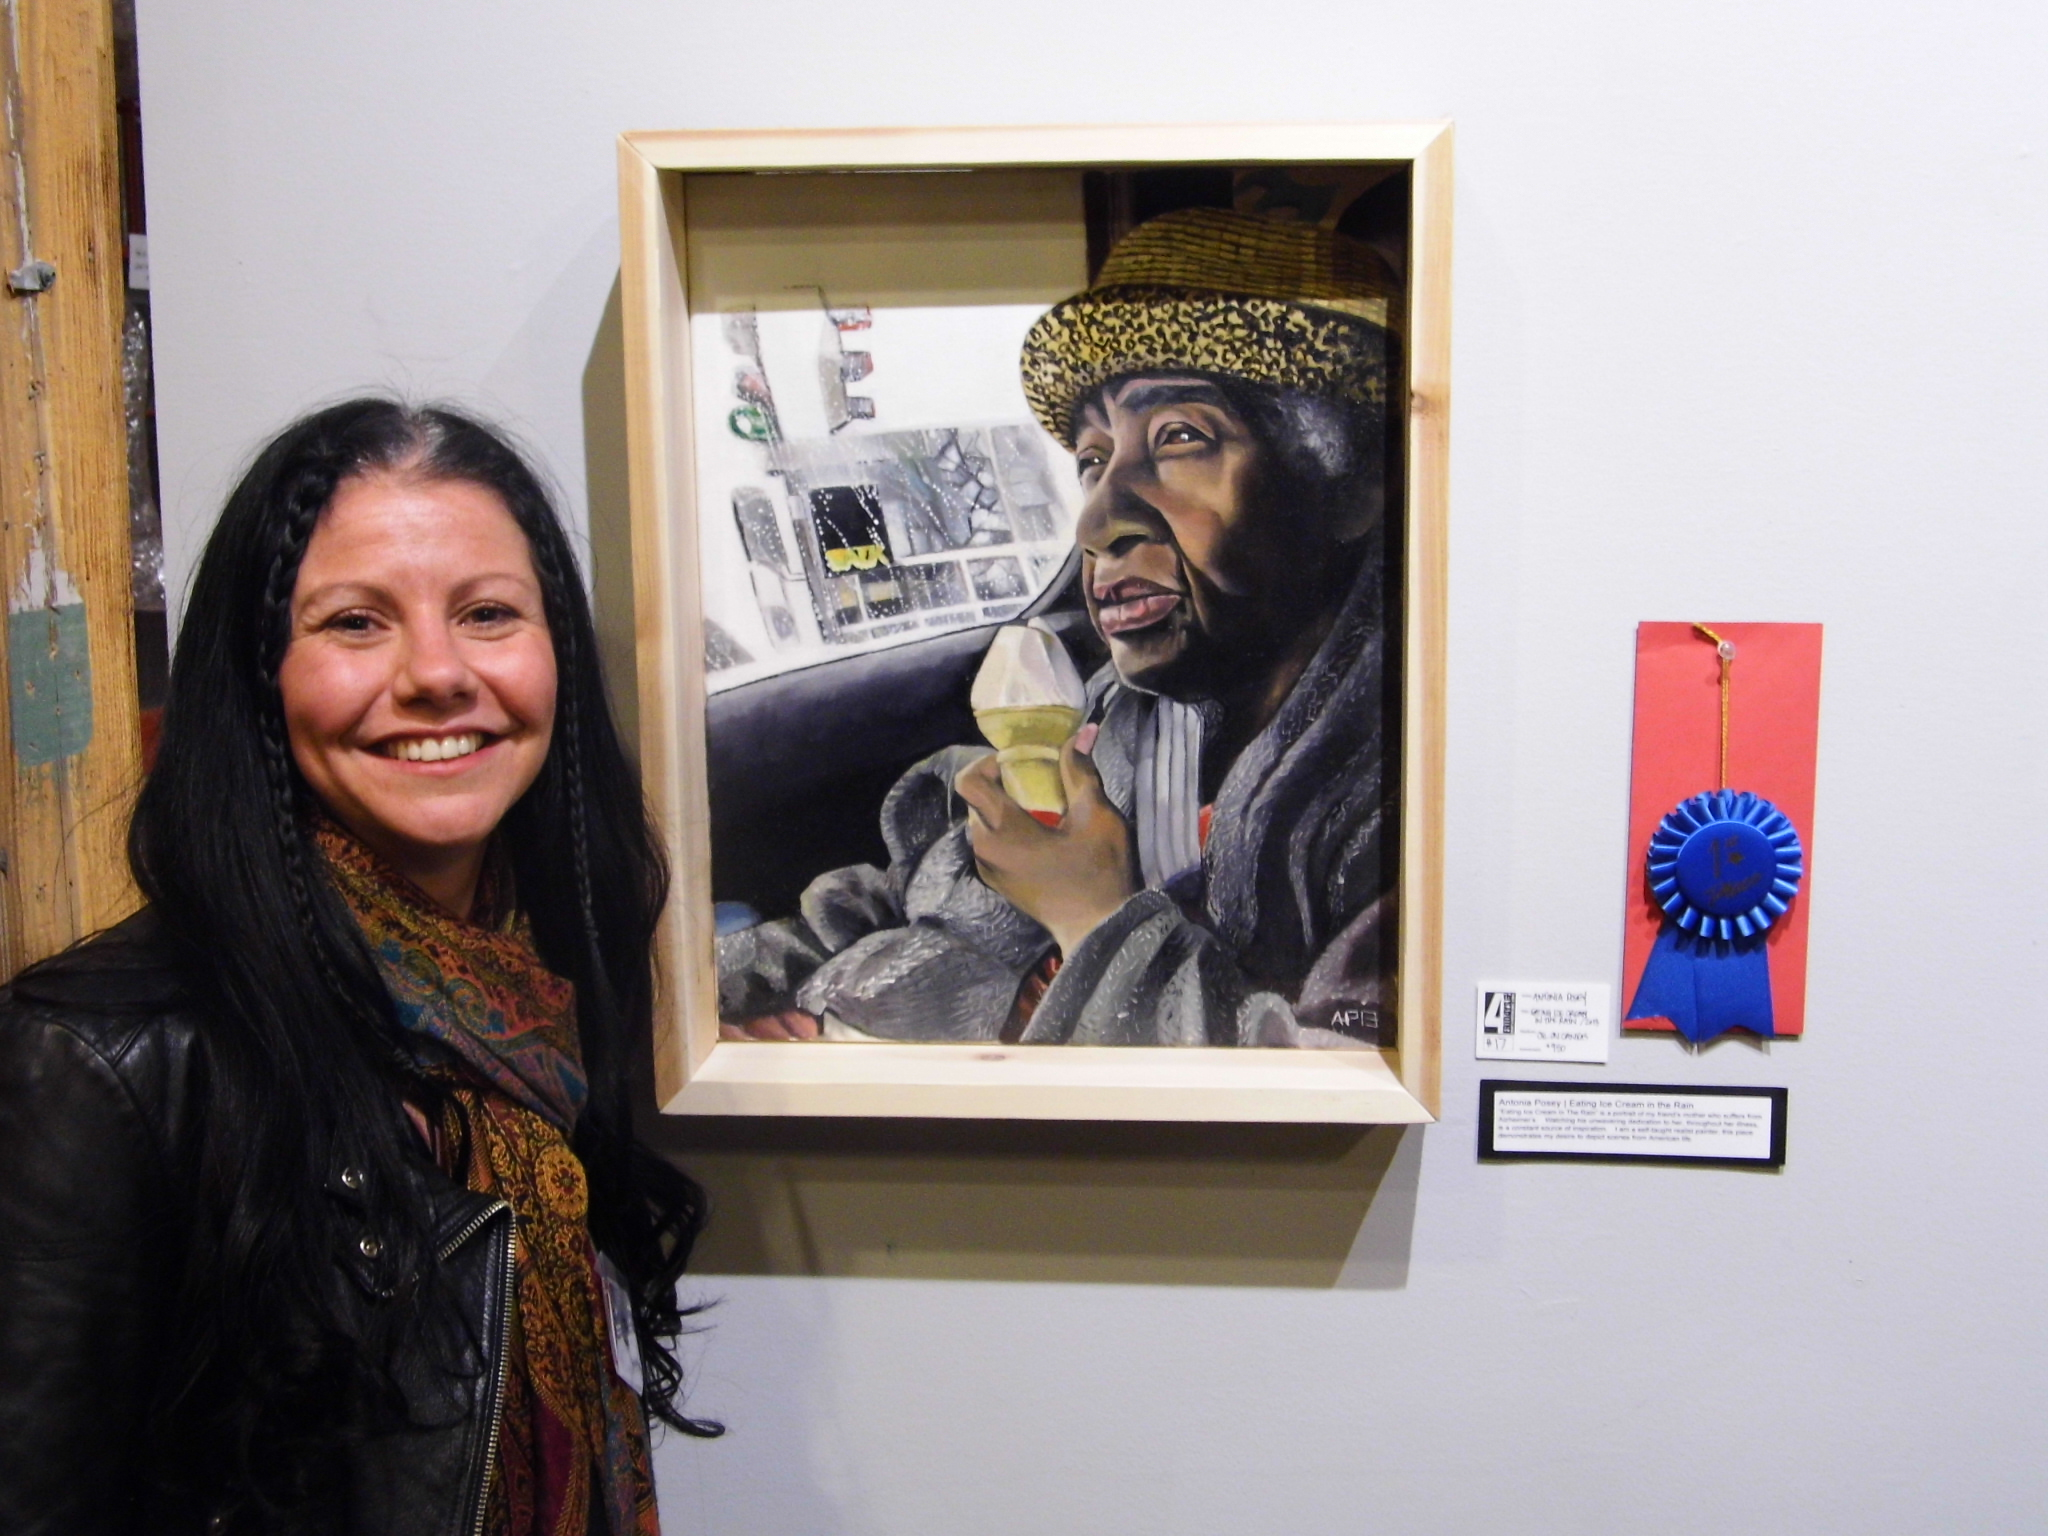 """Artist Antonia Posey with painting """"Eating Ice Cream in the Rain,"""" which took best of show at The Starline Gallery's 4th Fridays art exhibit in Harvard, Illinois, 2014."""